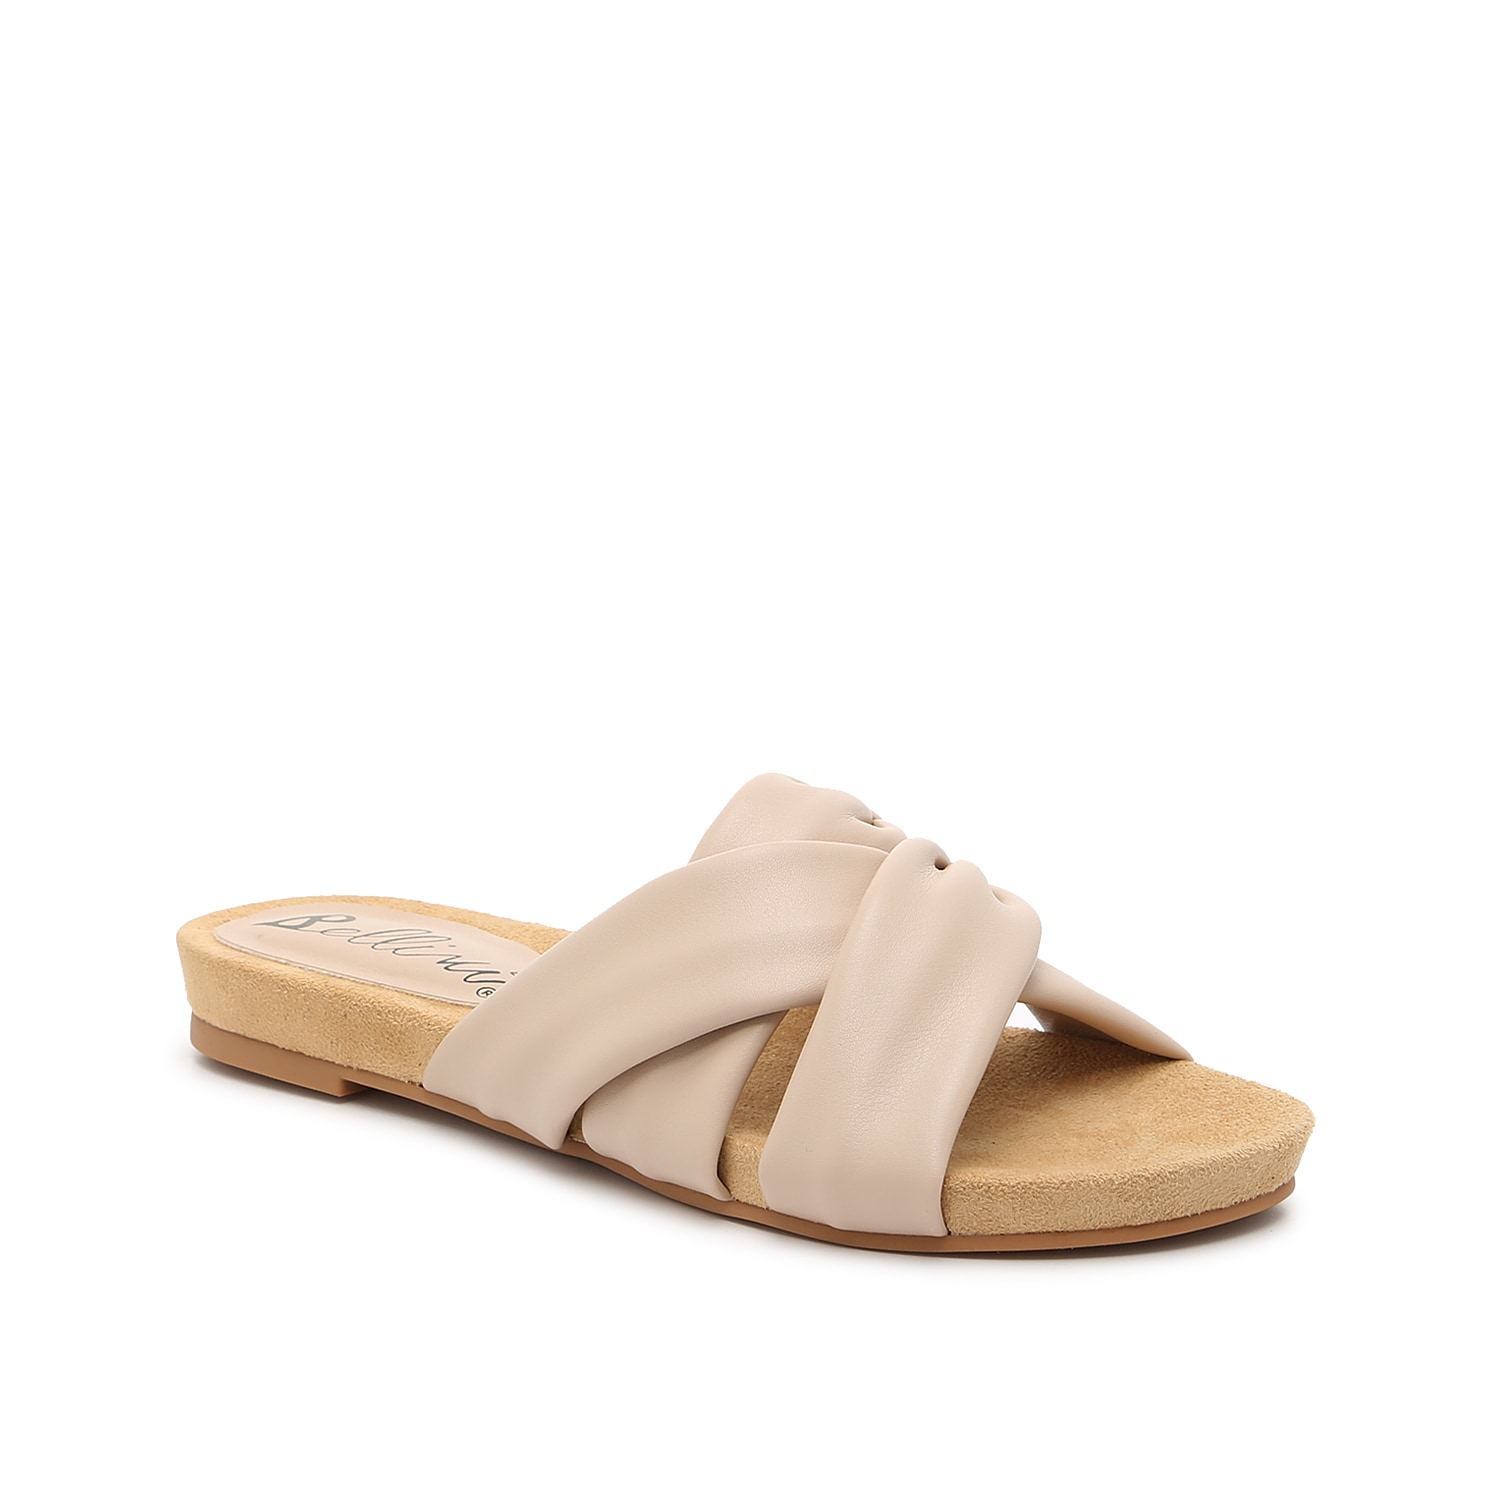 Give your ensemble cutesy style with the Nene sandal from Bellini. This silhouette is fashioned with a flat design and ruched accents for added interest!